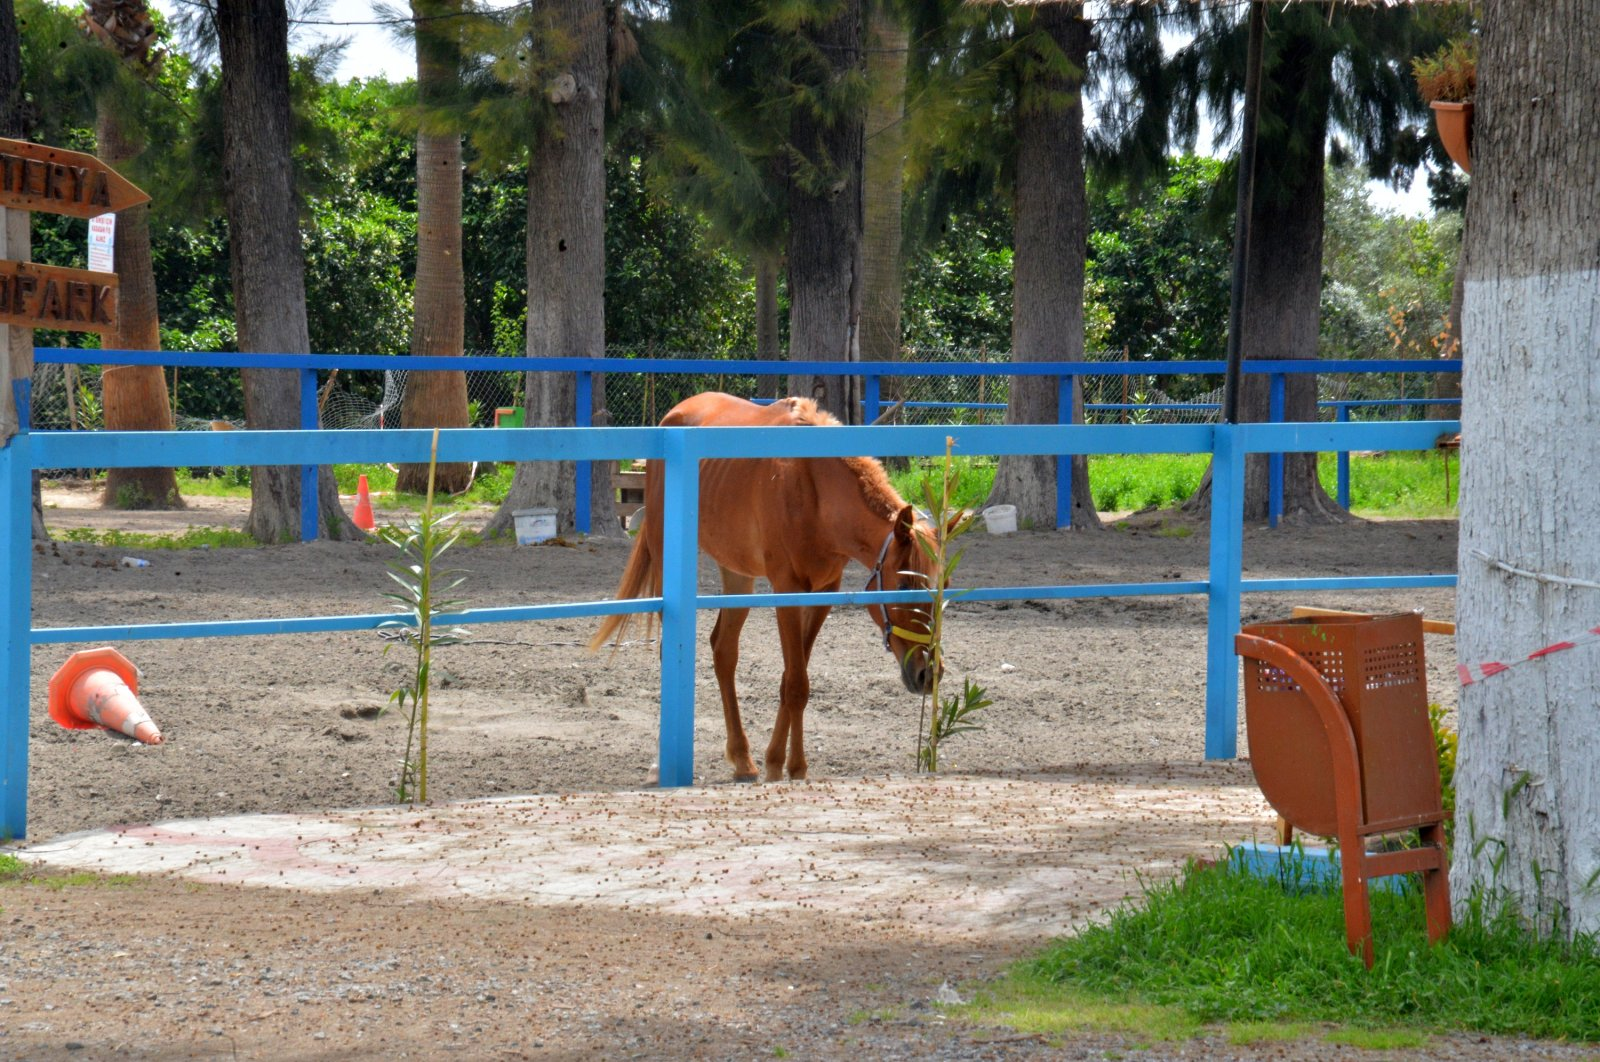 Ataturk Horse Farm, the place where the missing horses were allegedly sent, in Dörtyol, Hatay, April 21, 2021. (DHA Photo)